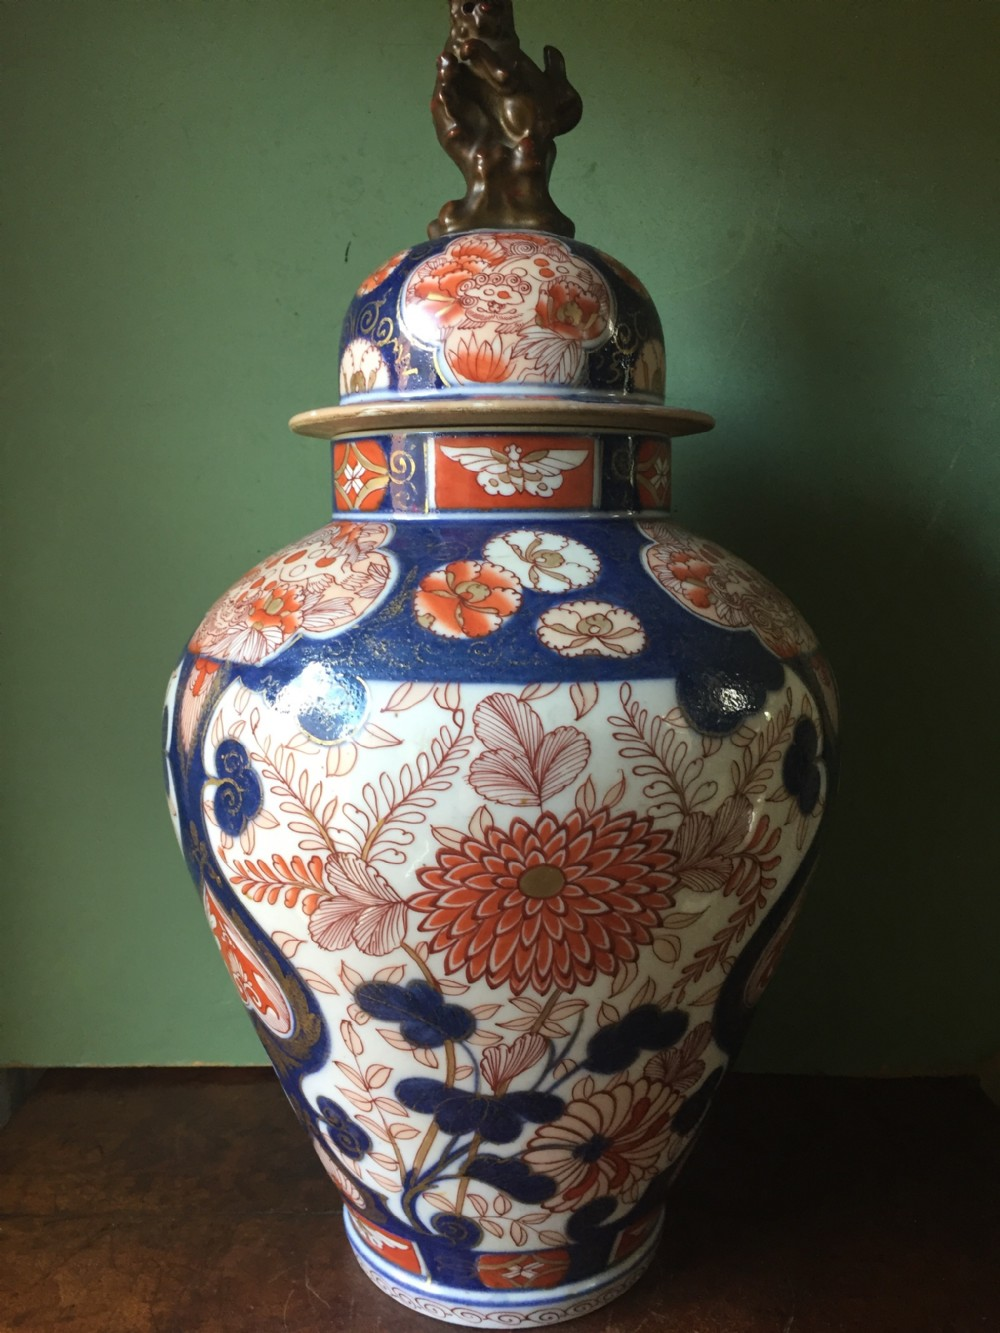 c18th japanese imari pattern porcelain vase and cover